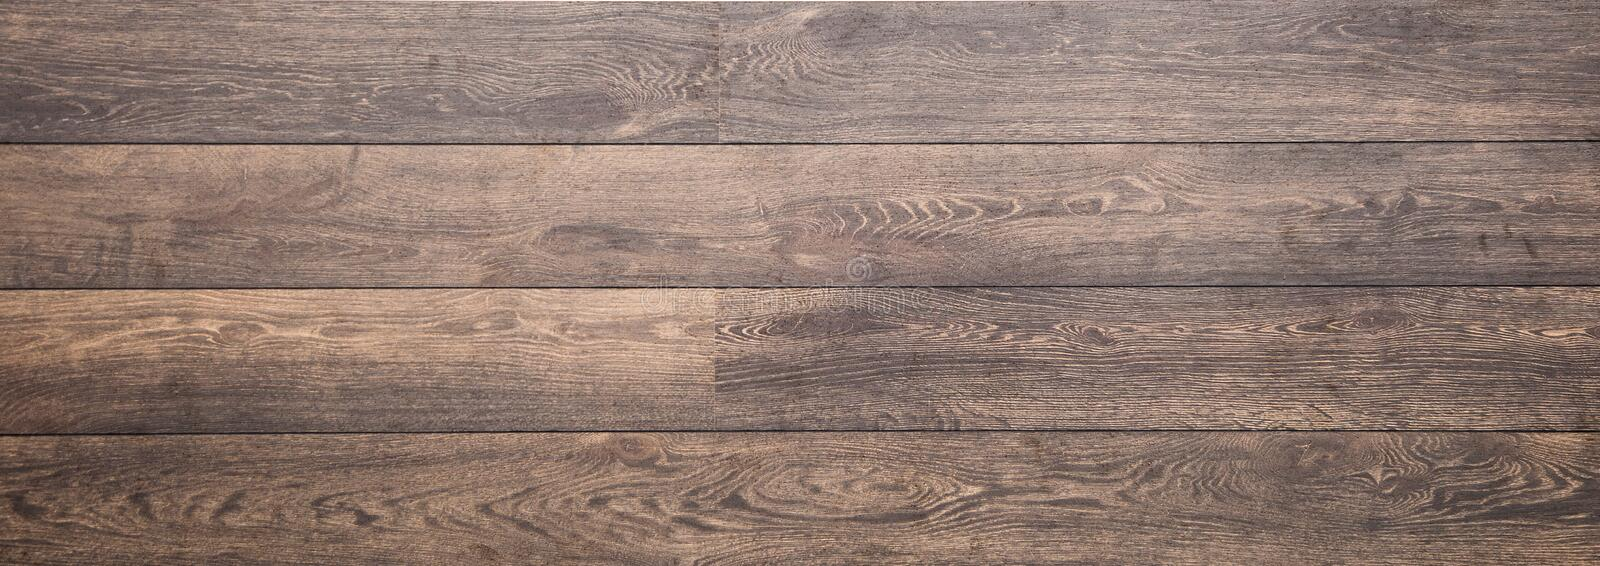 Wood texture background. Photo laminate flooring or parqet, can be used as background or texture royalty free stock images